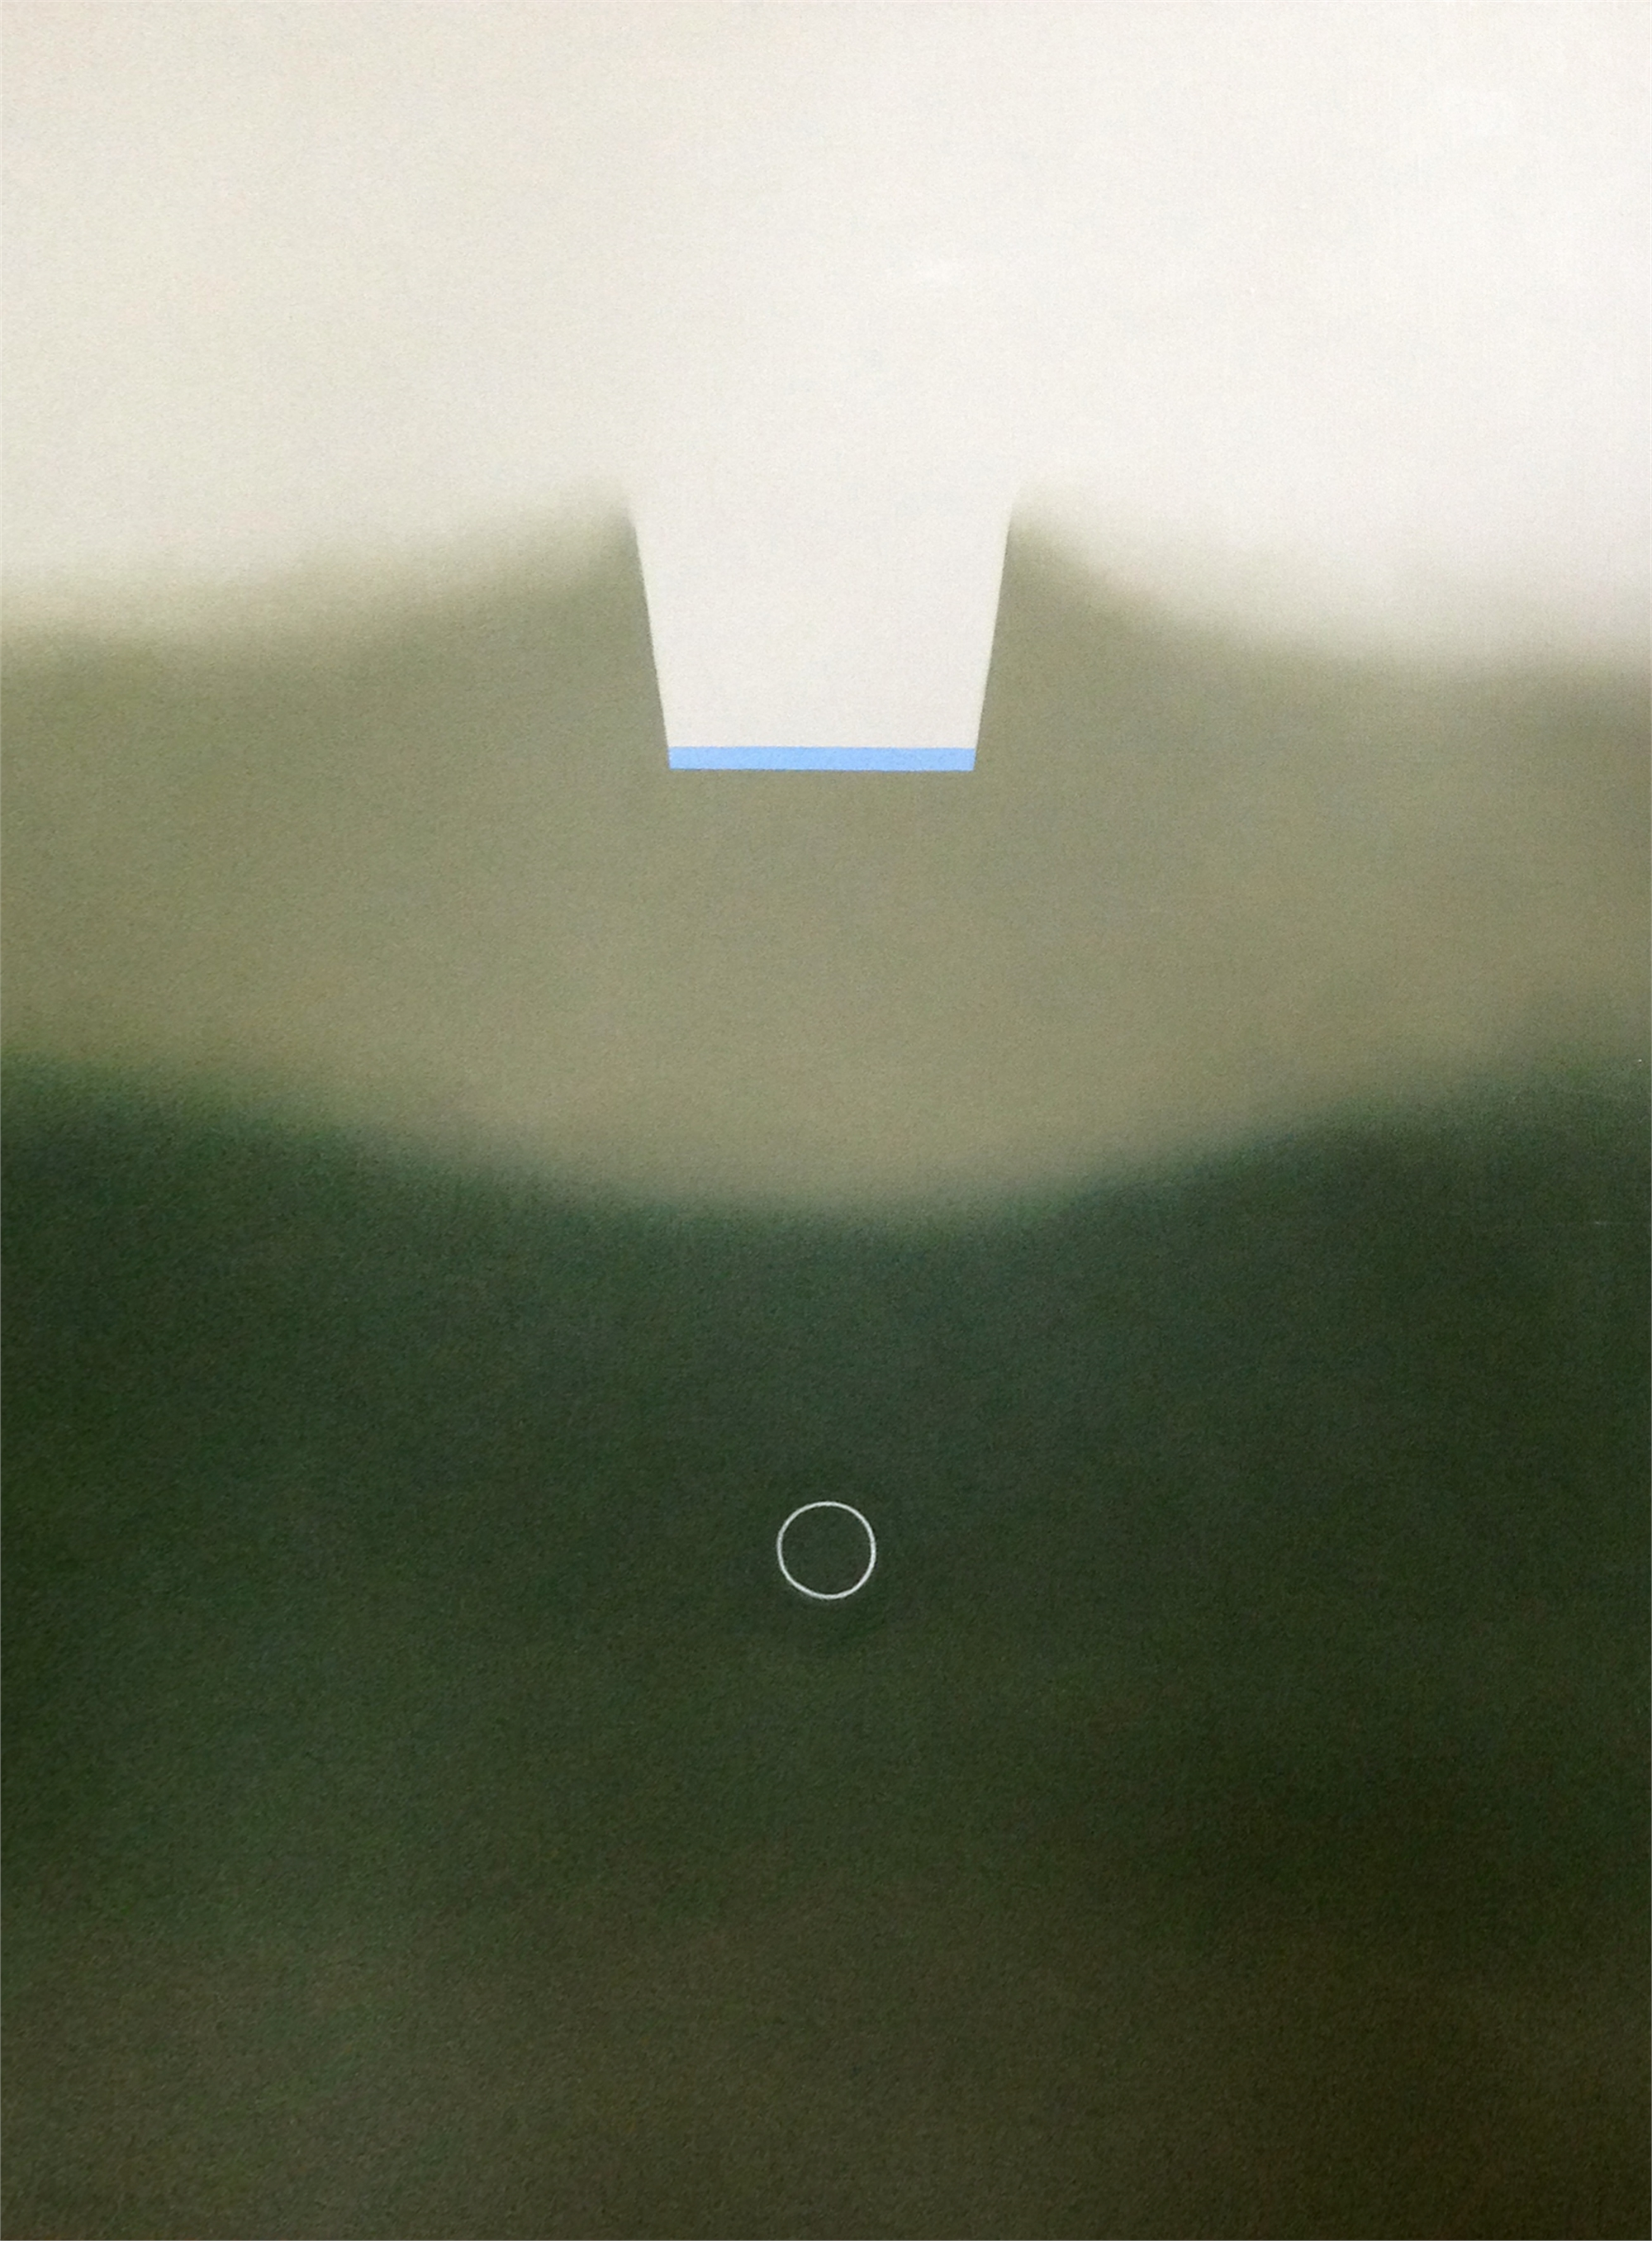 Green Scape with White Ring by Leila McConnell